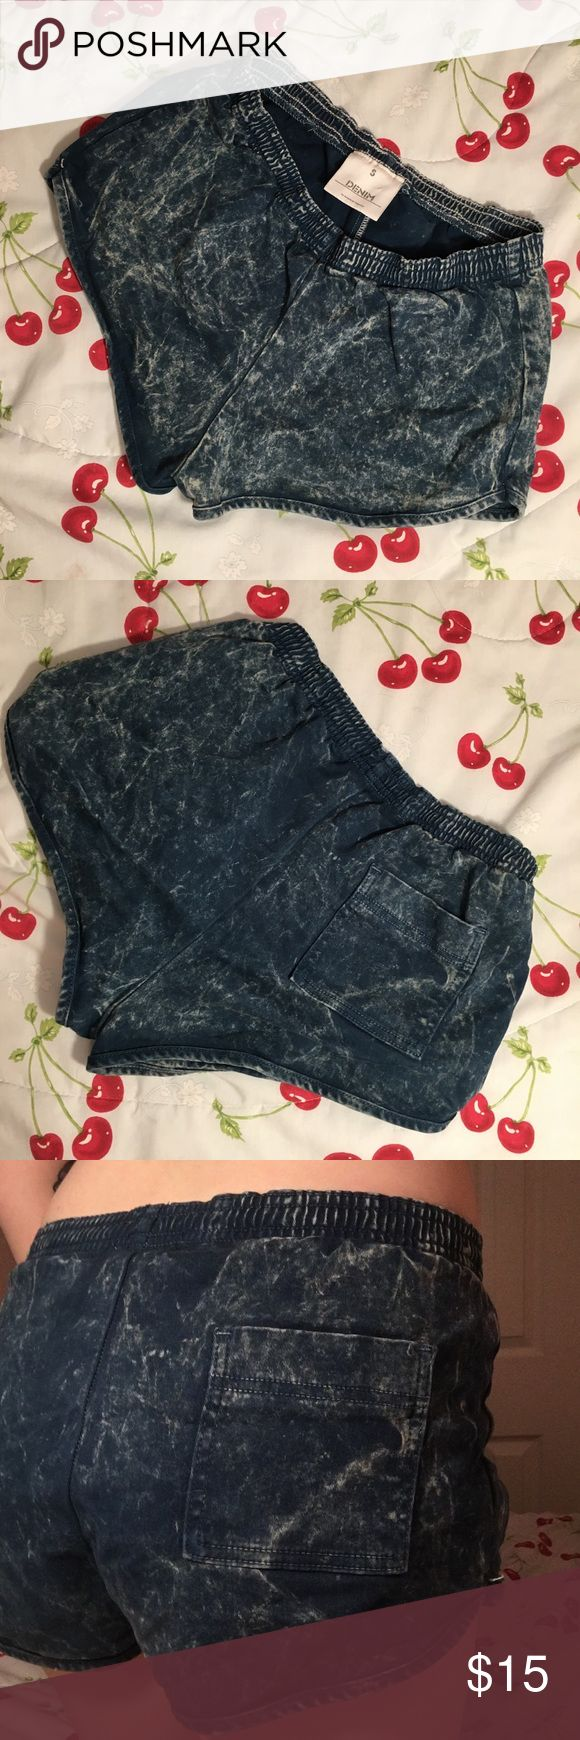 AA Acid Wash Short American Apparel Acid wash soft shorts. Very causal and cozy. Great for covering up at the beach or lounging around! One back pocket.Size small. American Apparel Shorts